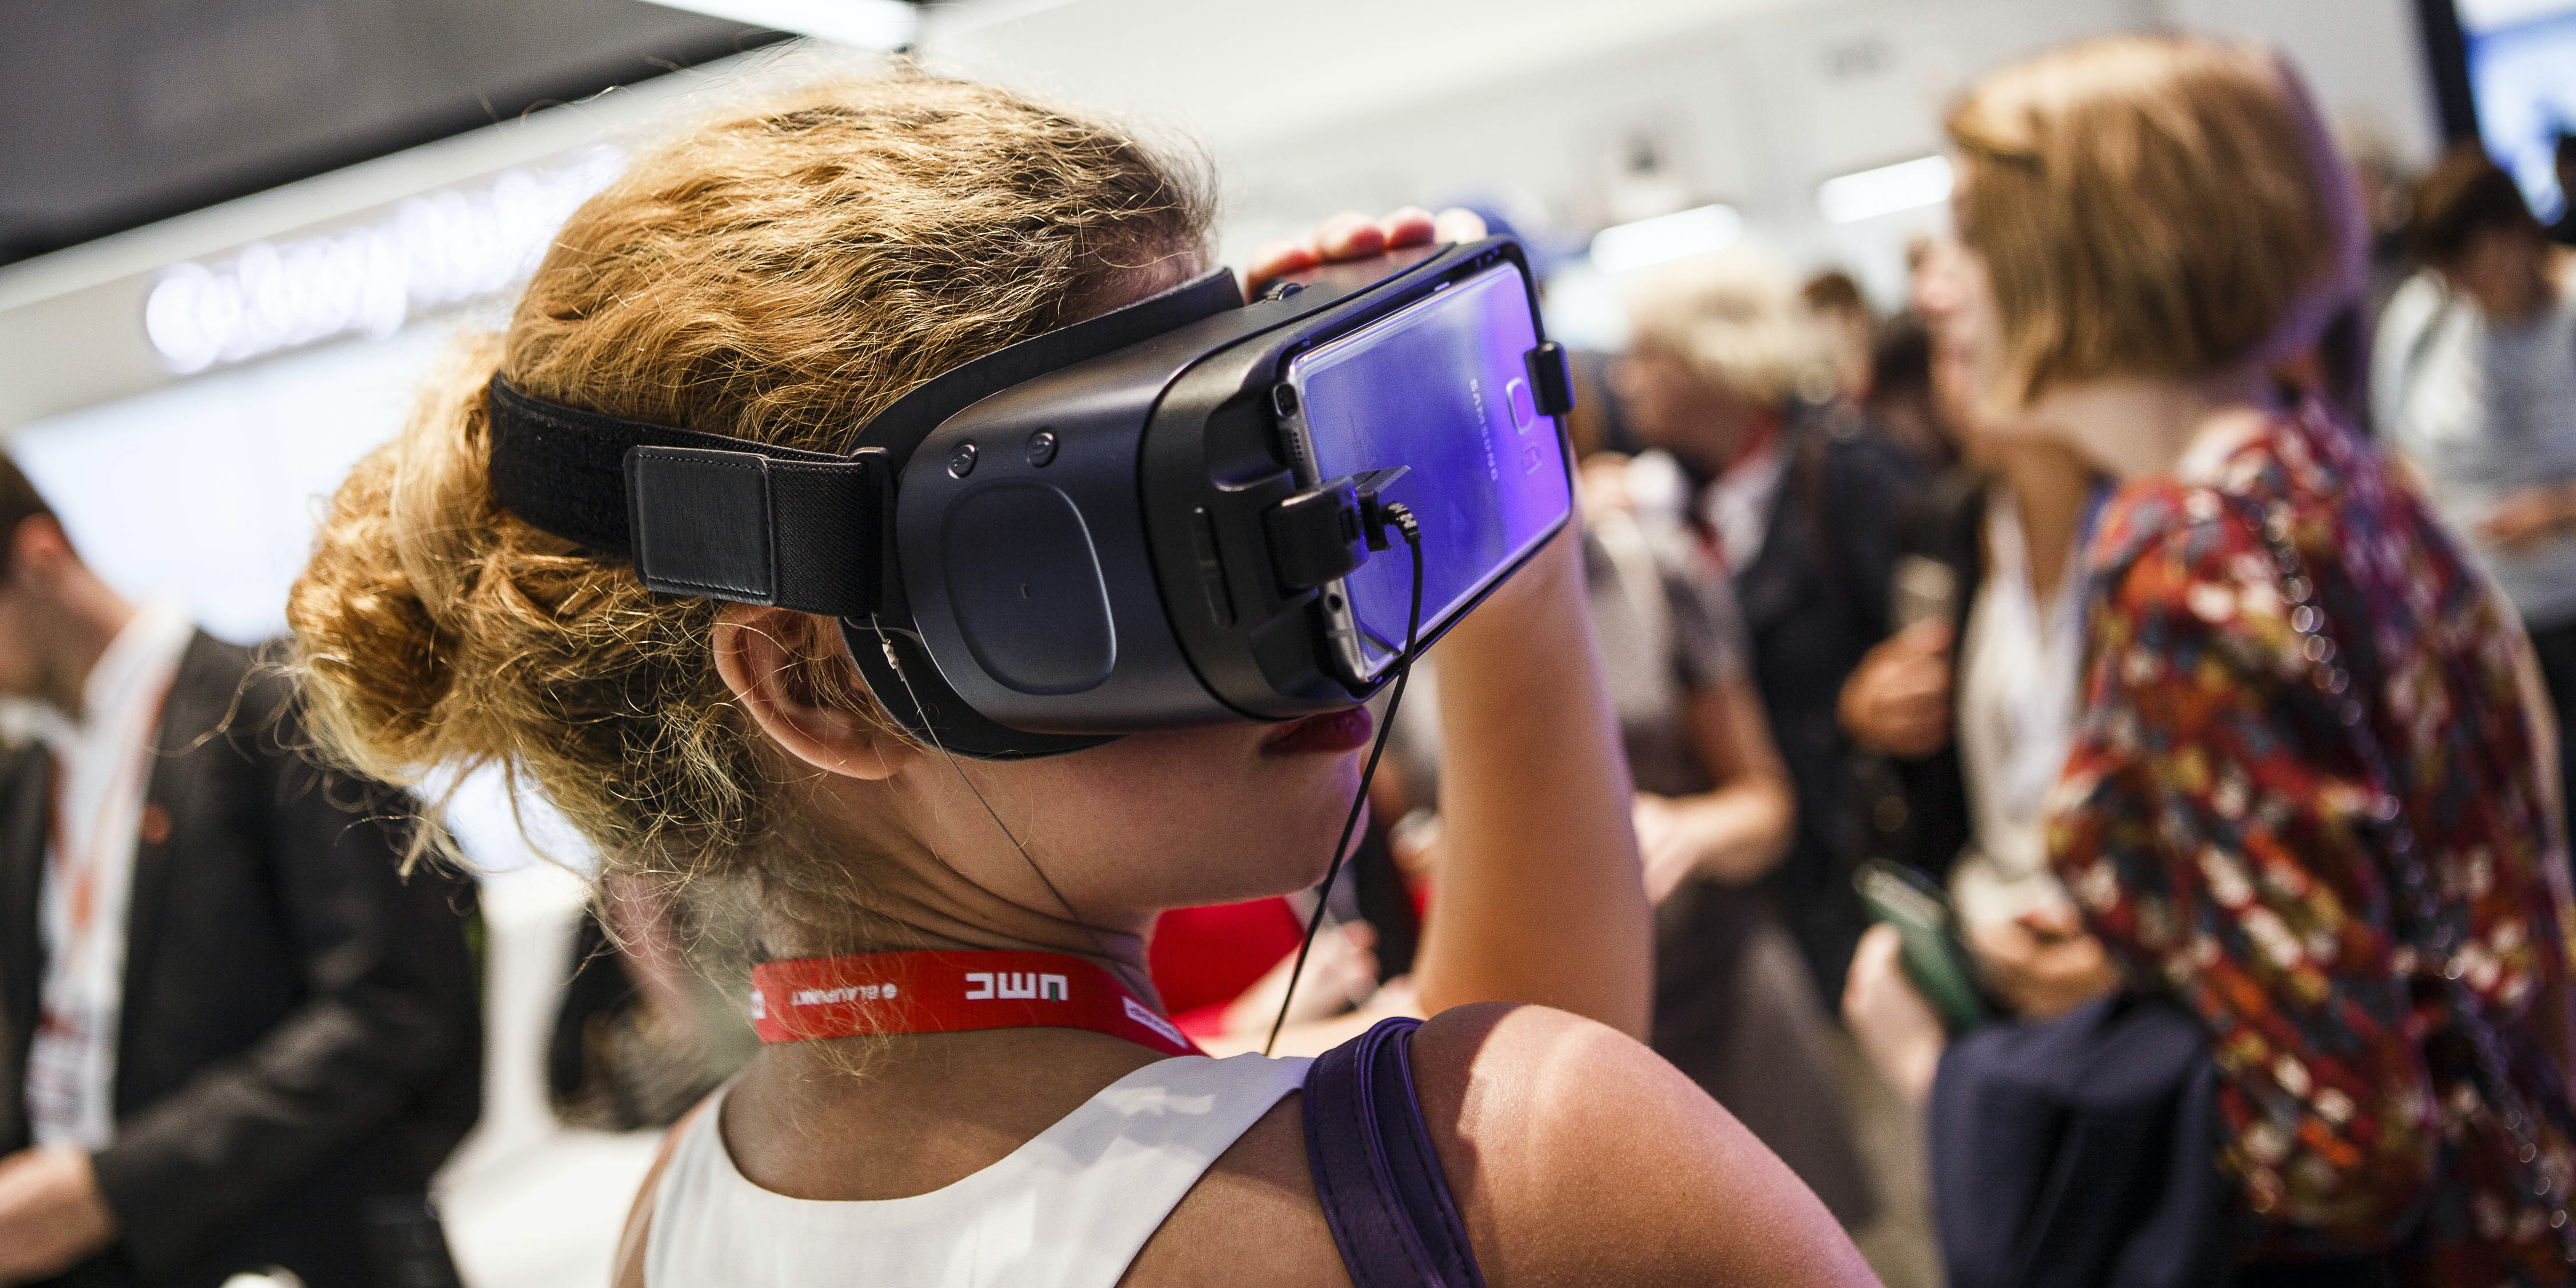 A visitor tries out virtual reality from Samsung at the 2016 IFA consumer electronics trade fair on September 2, 2016 in Berlin, Germany. IFA is among the world's largest trade fairs for consumer electronics and home appliances and runs from September 2-7. (Photo by Carsten Koall/Getty Images)